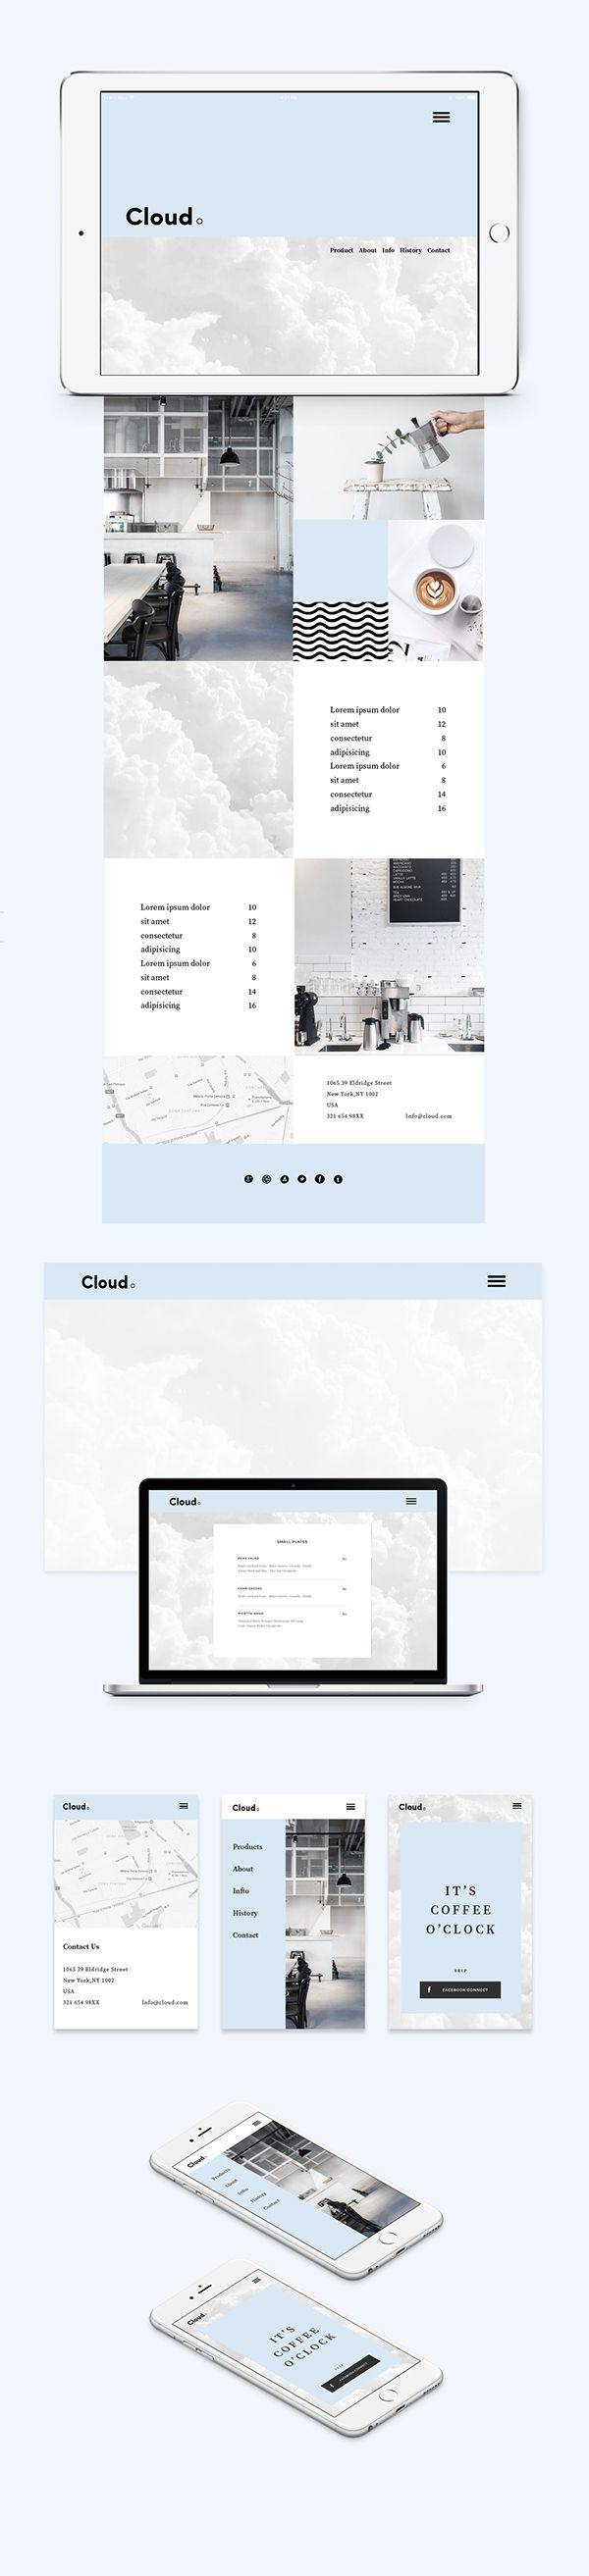 Cloud.Coffee Shop on Branding Served